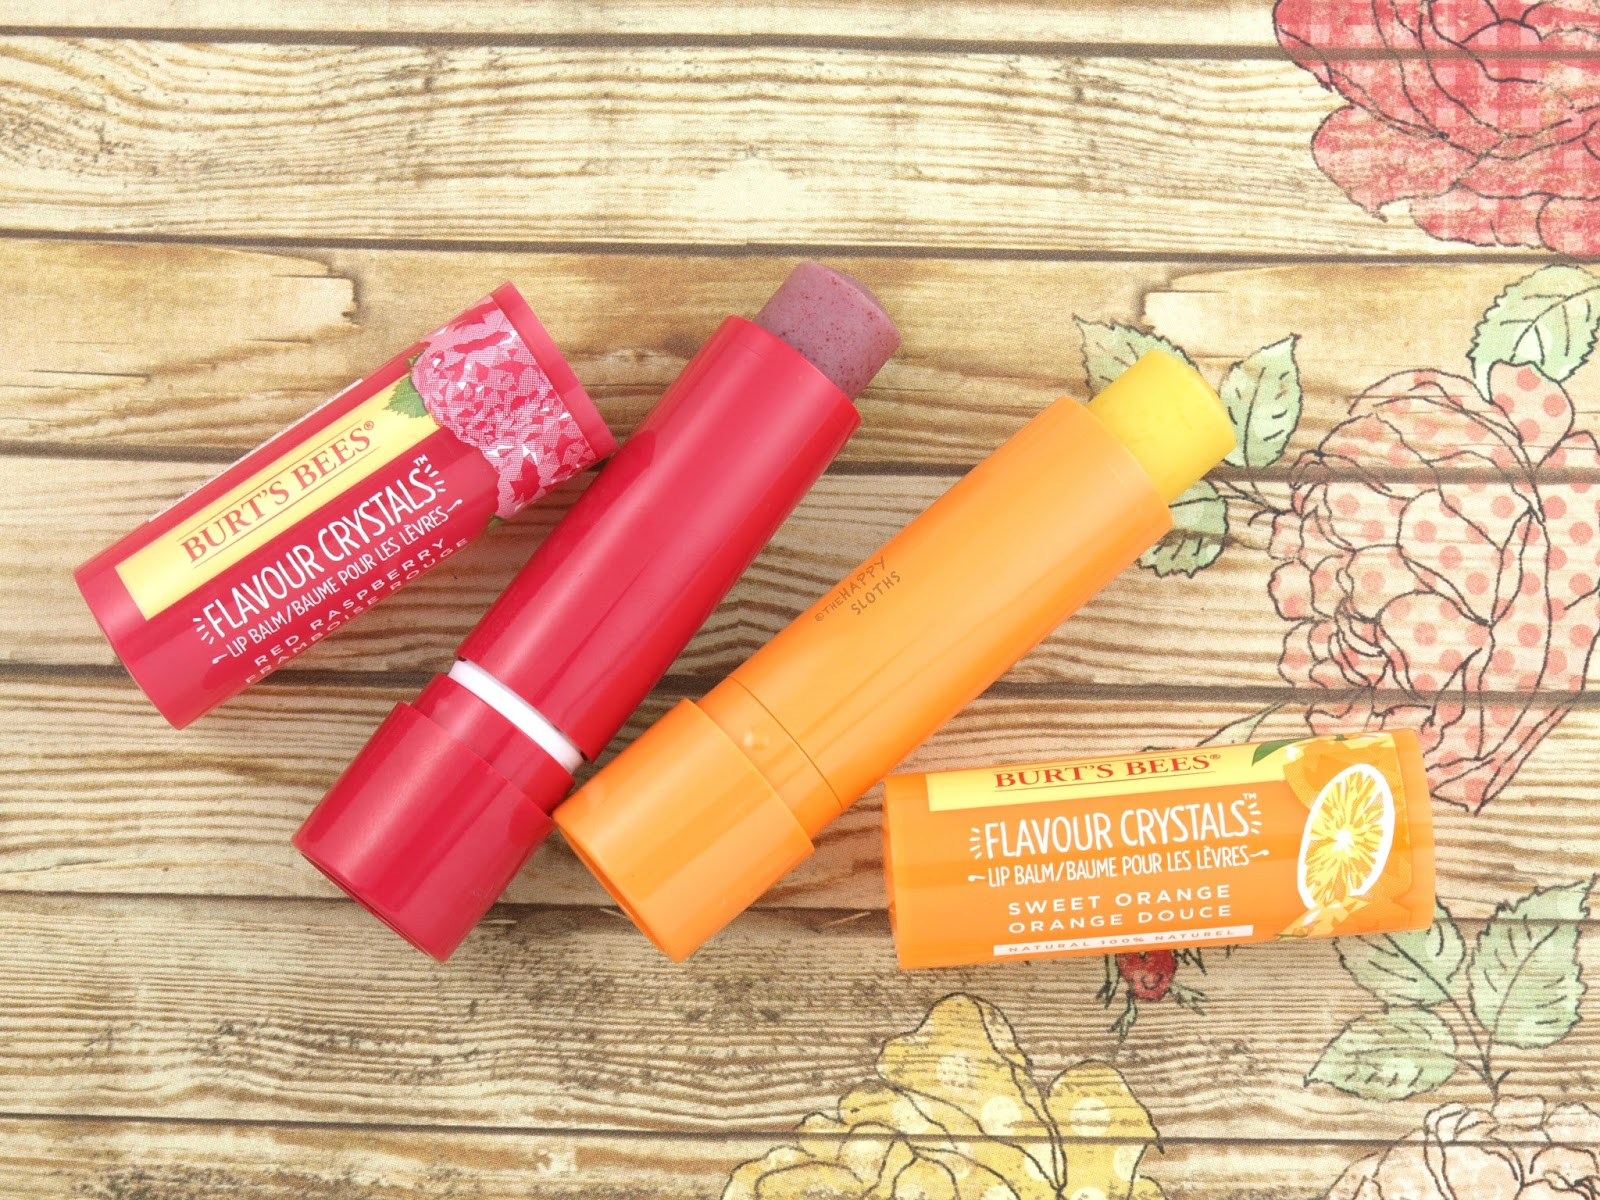 Burt's Bees Flavour Crystals Lip Balm: Review